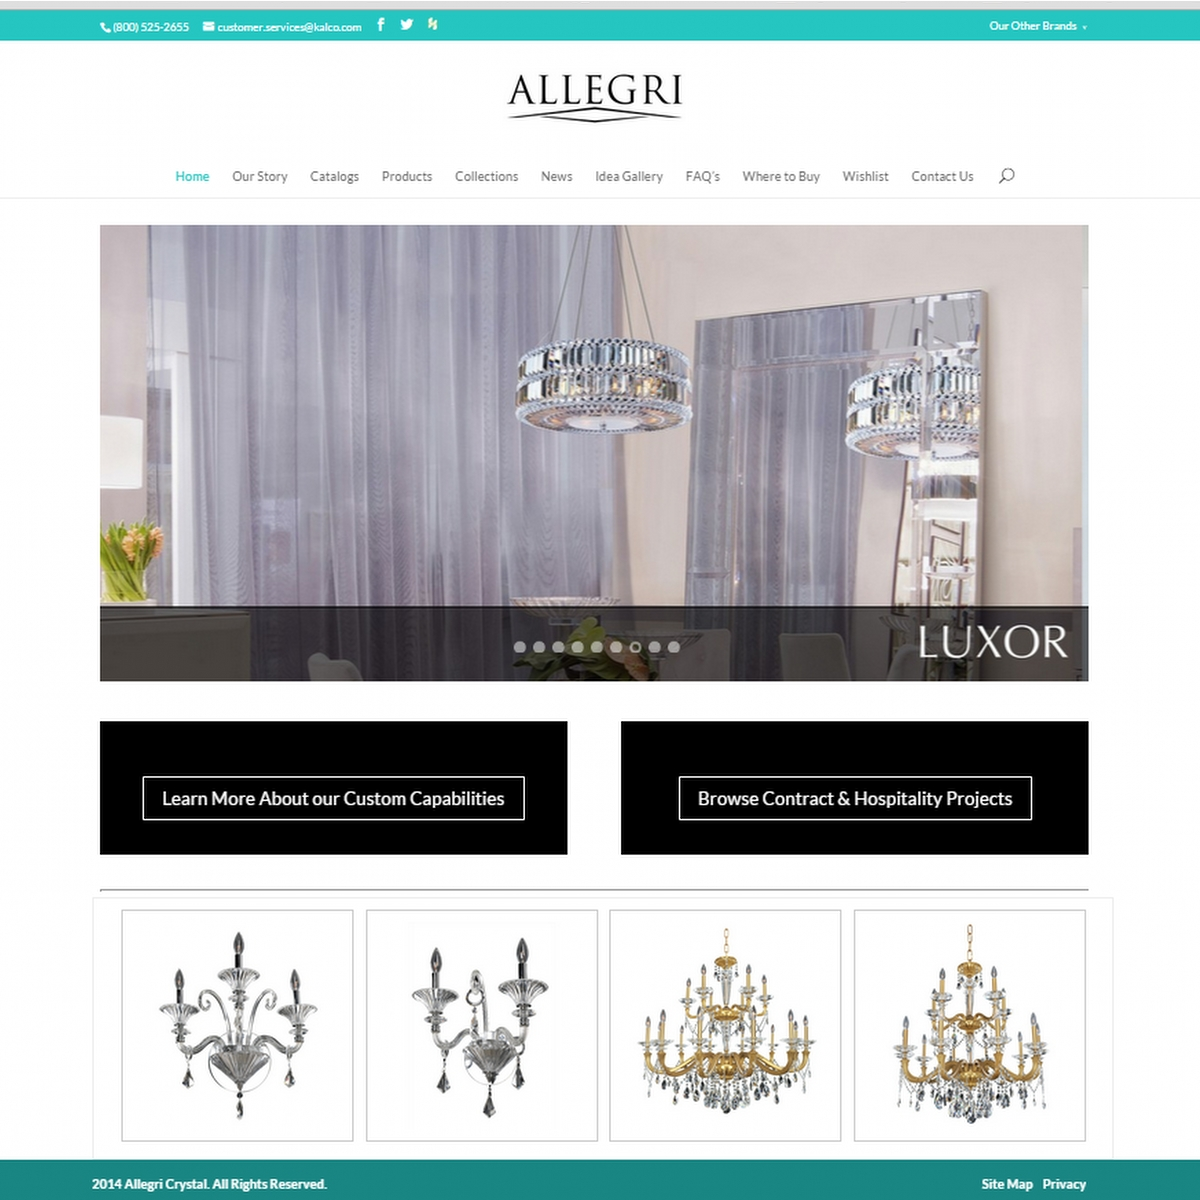 Allegri CrystalWebsite Design & Development